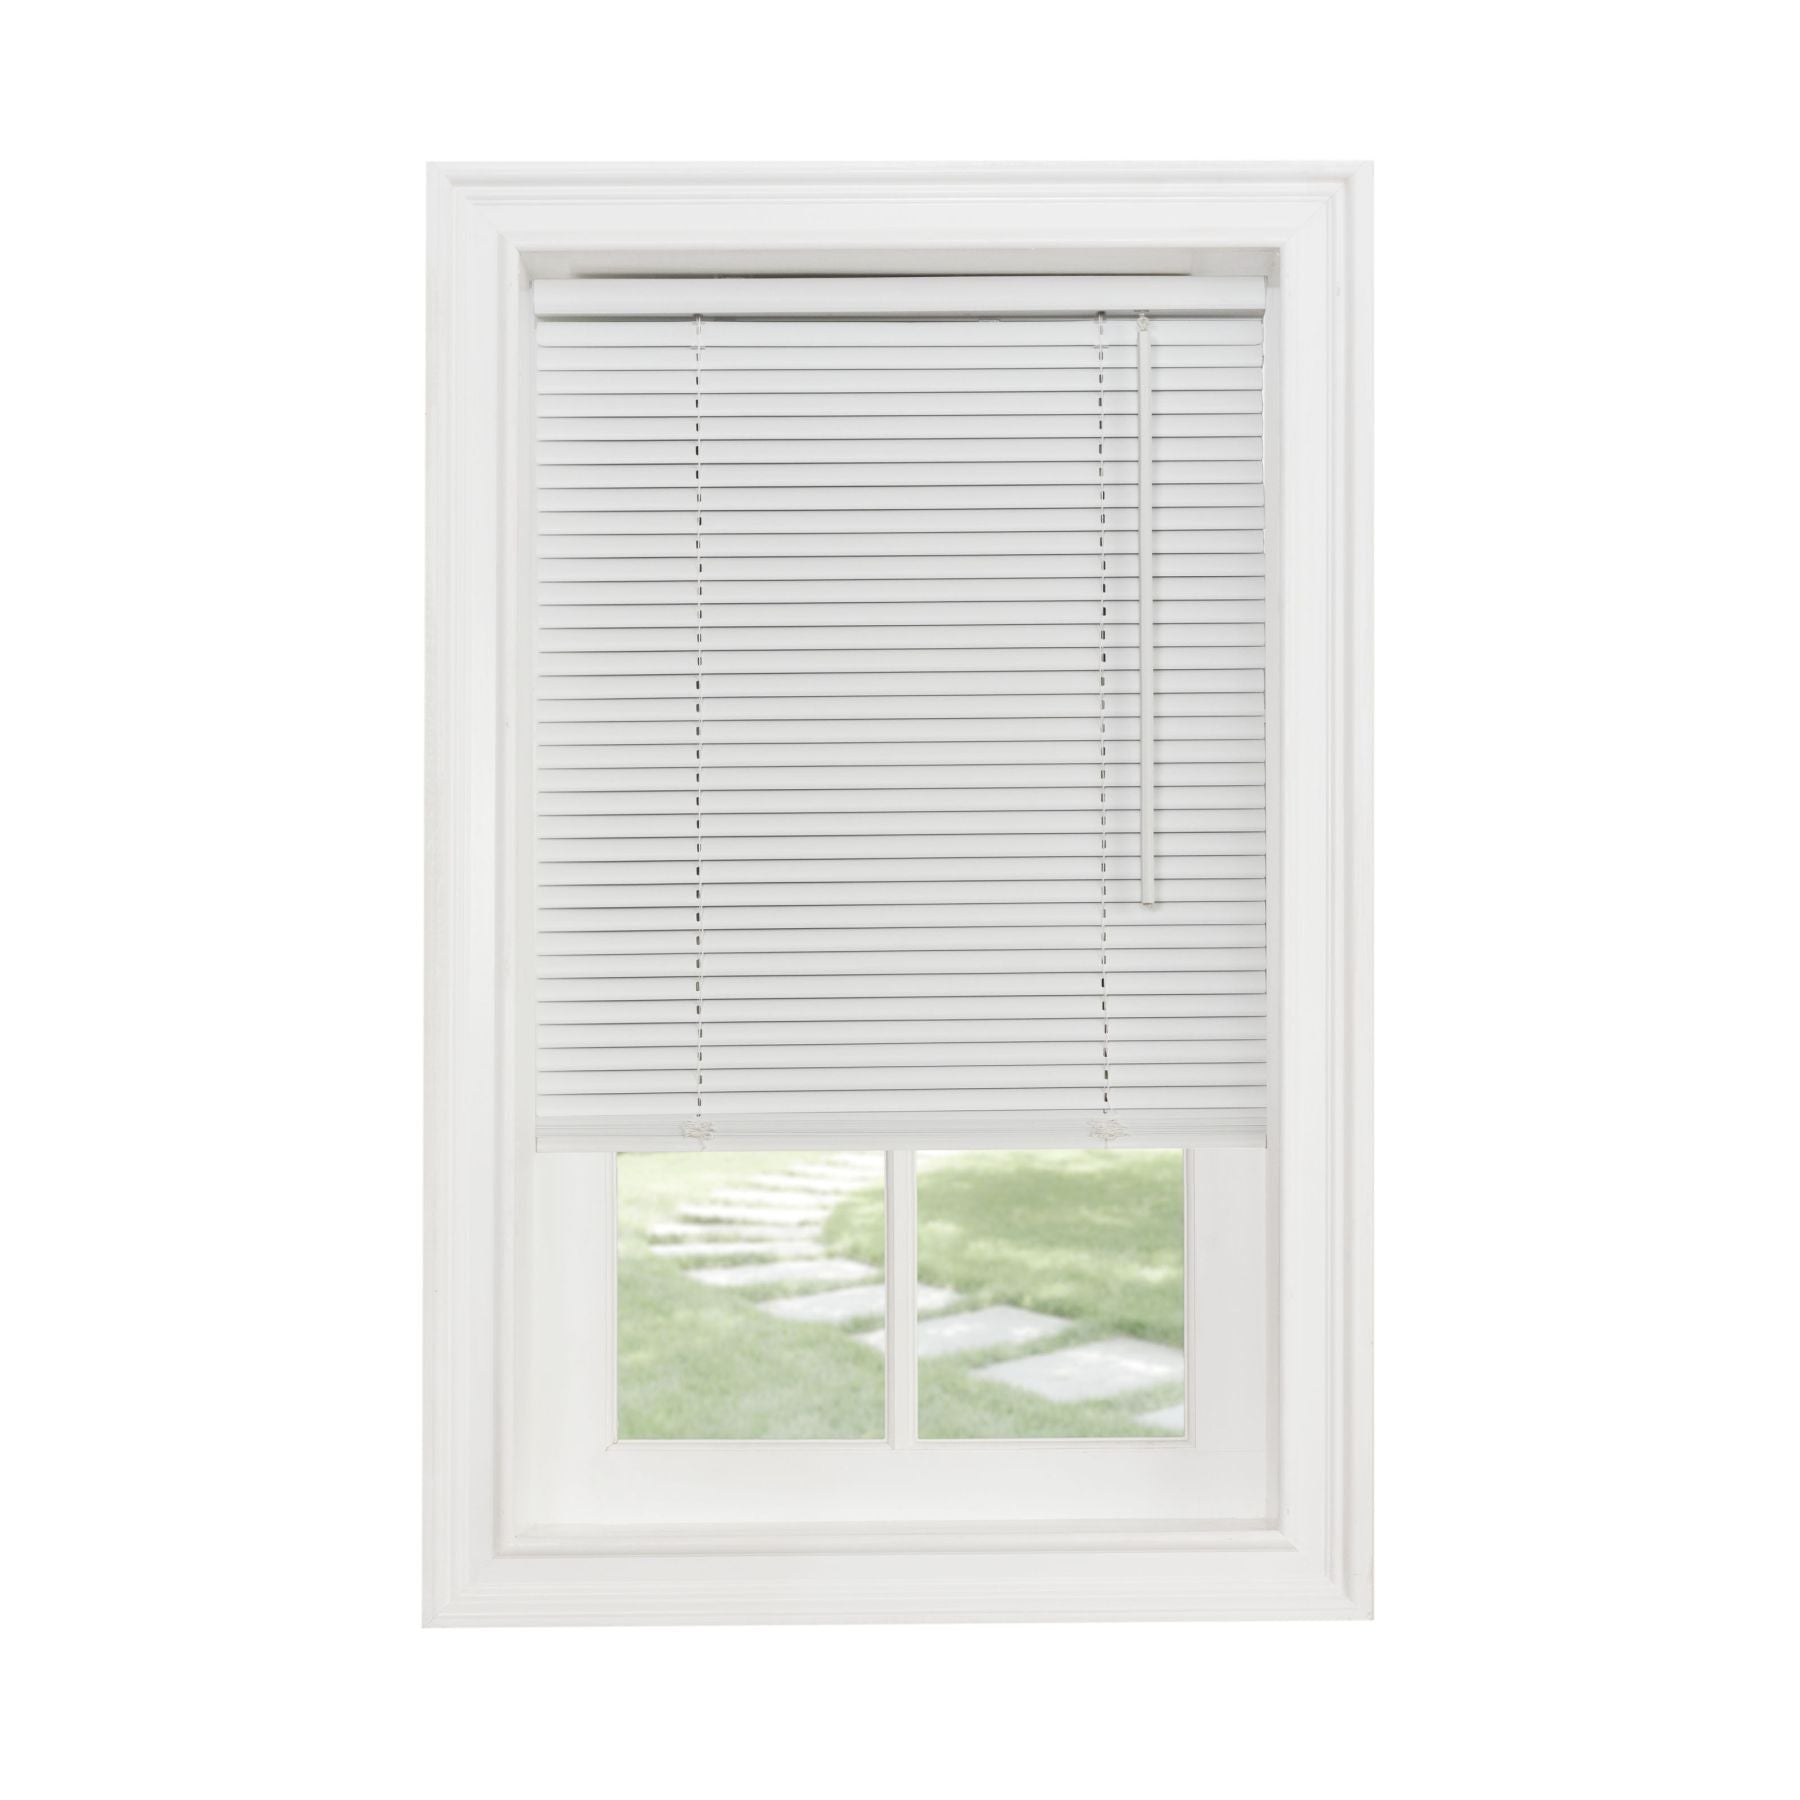 "Traditional Elegance Cordless Sunrise 1"" Light Filtering Mini Blind 33x64 - White"